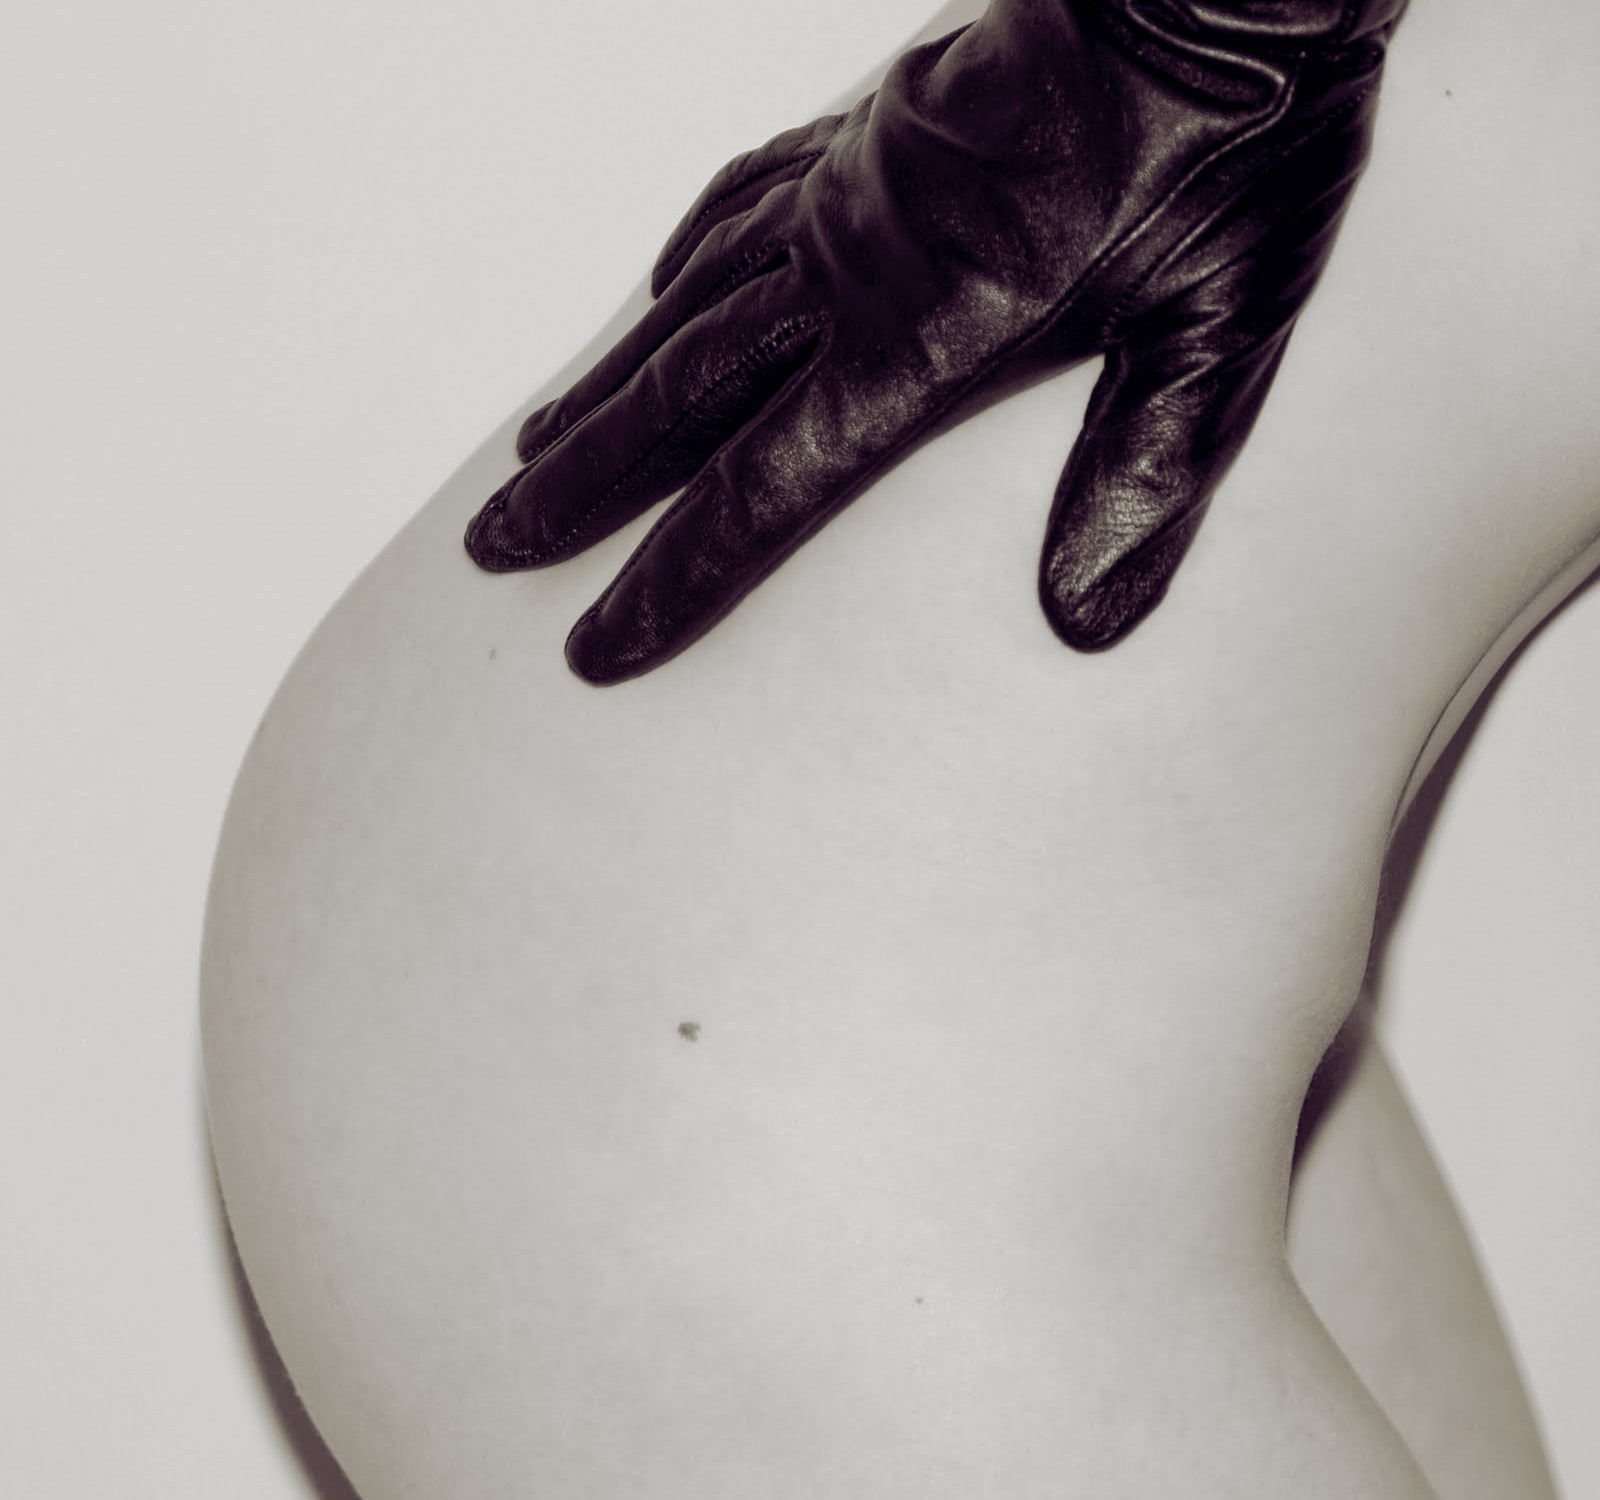 The provocative album art for The Strokes' 'Is This It' featured a leather glove-clad hand resting on a woman's nude behind - an image that has become synonymous with the wave of garage rock revival.